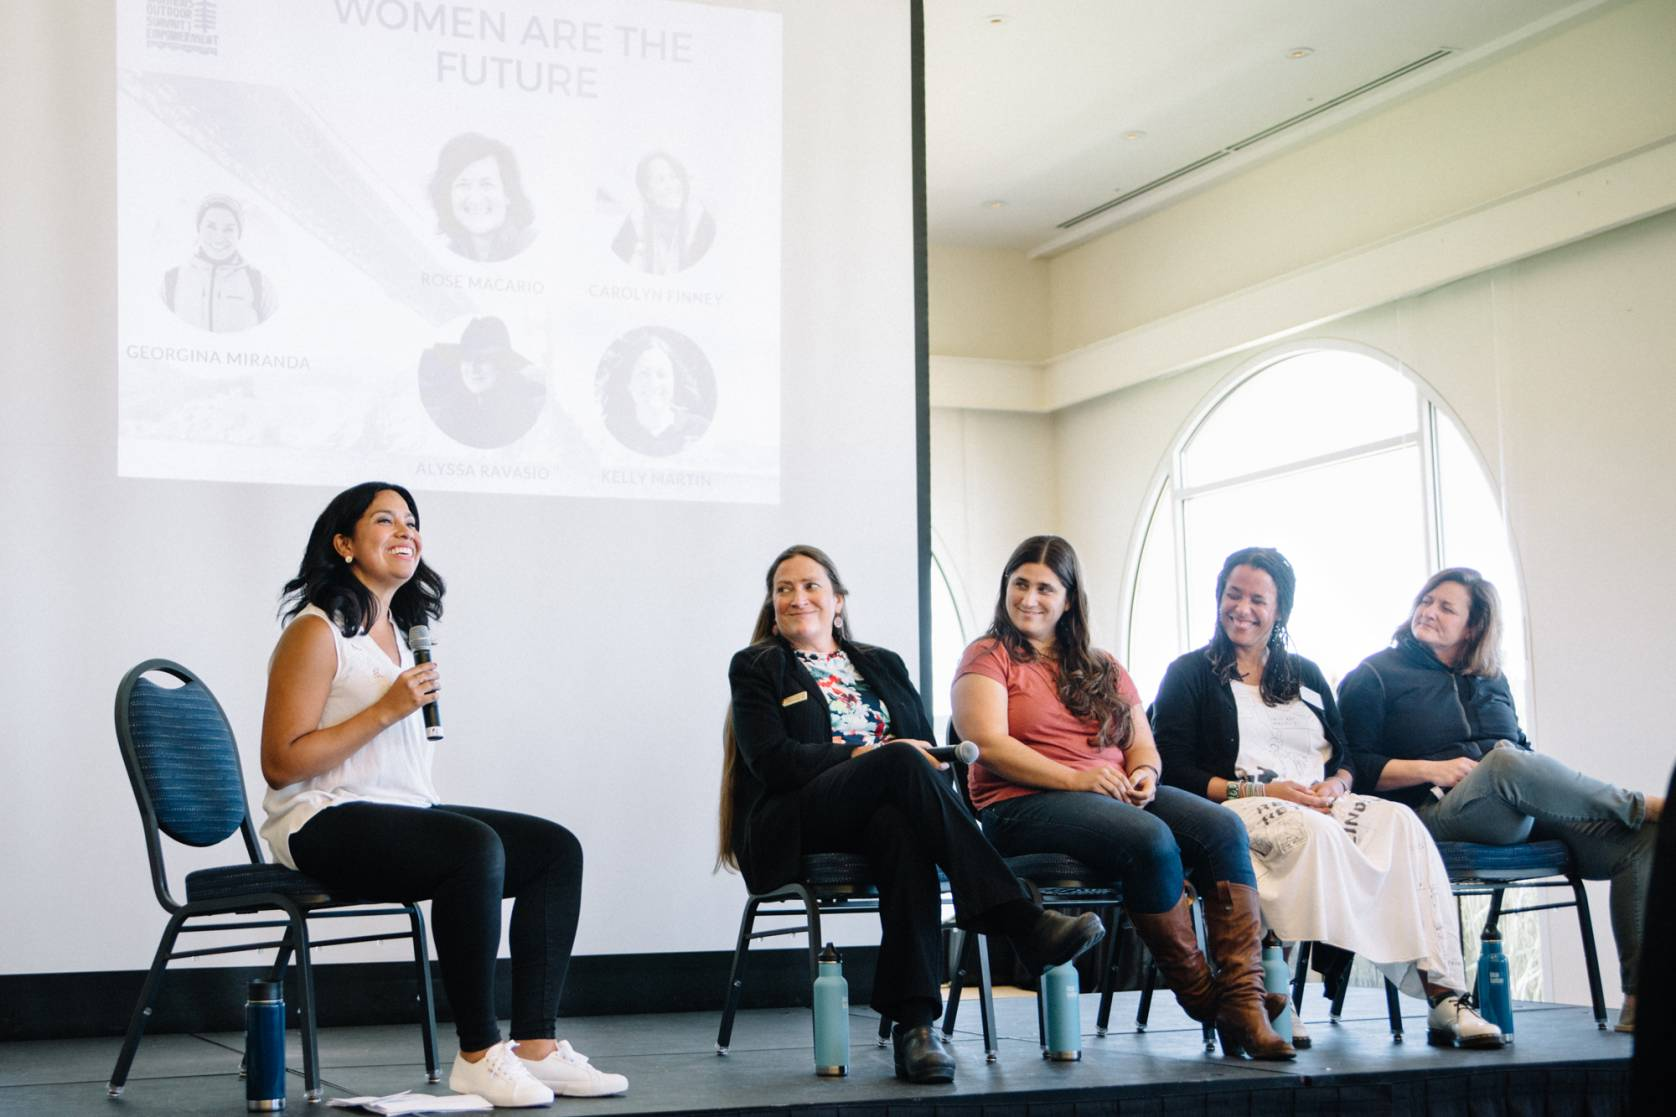 5 women, one holding a microphone, on a speaking panel at a Women's Outdoor Summit